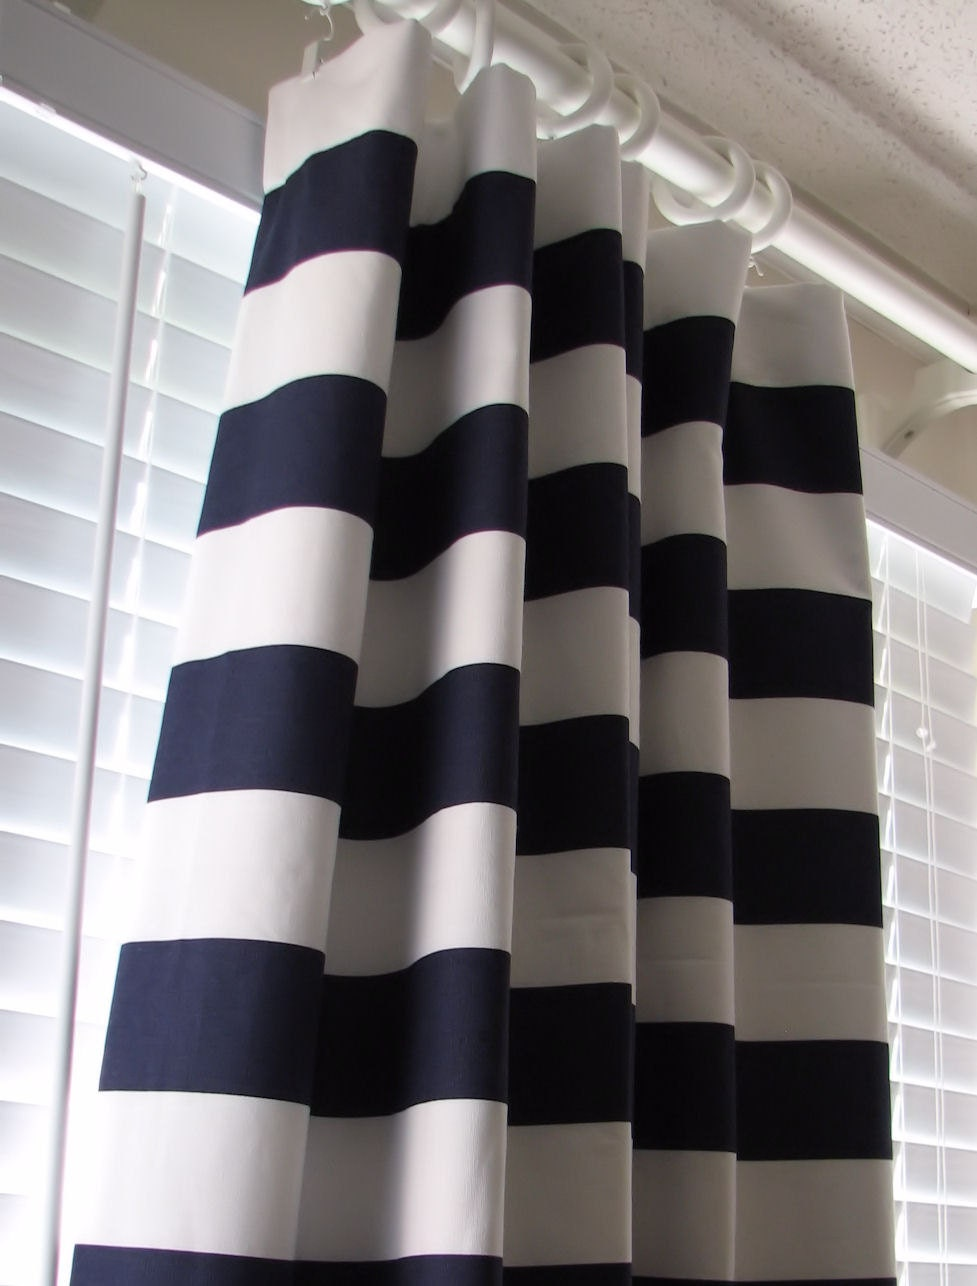 ... Curtains Drapes 50 x 96 Navy Blue and White Horizontal Stripe Rugby